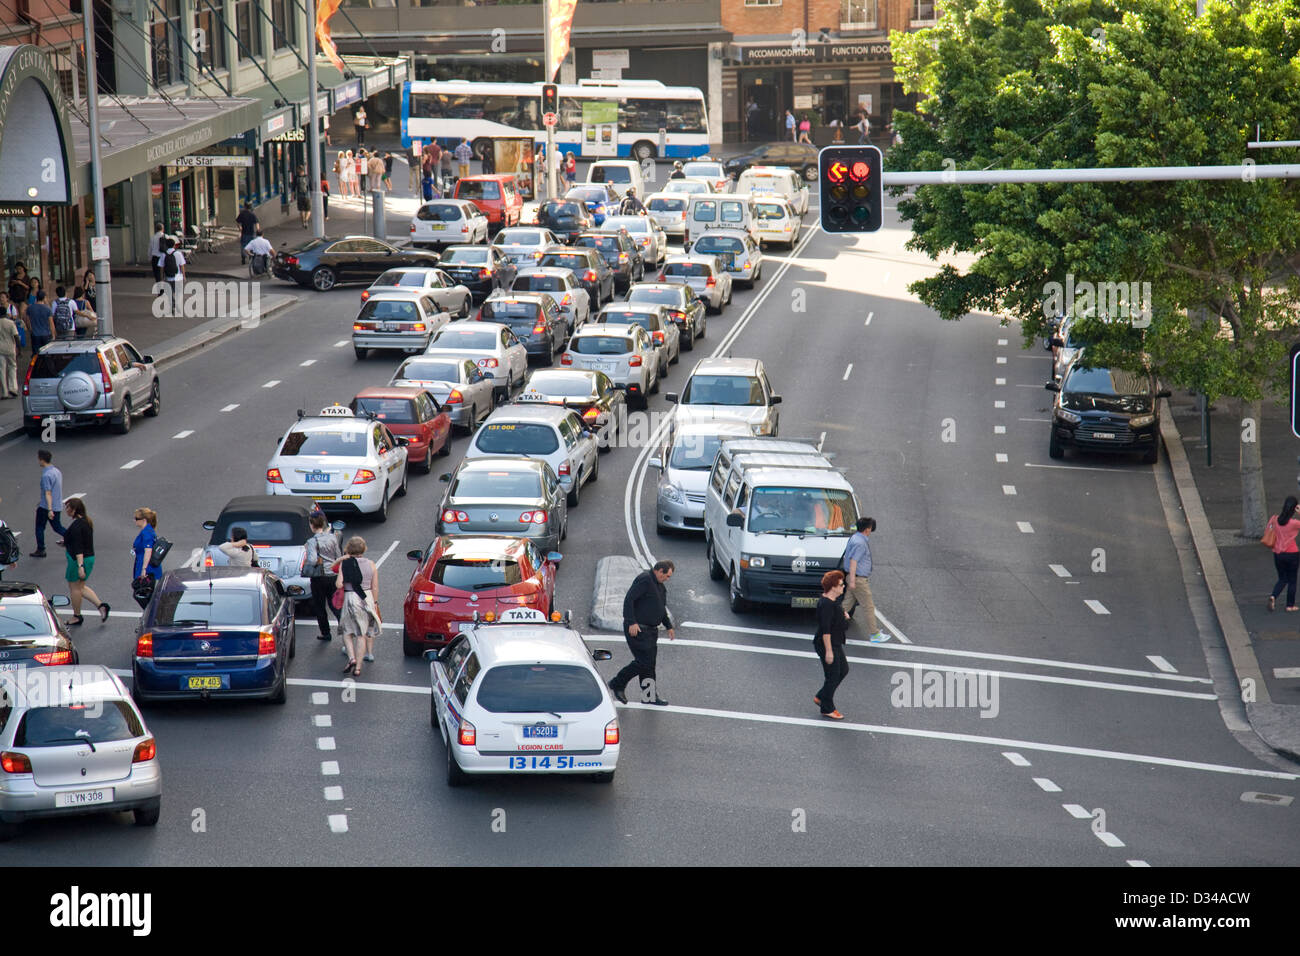 traffic congestion in sydney CBD - Stock Image